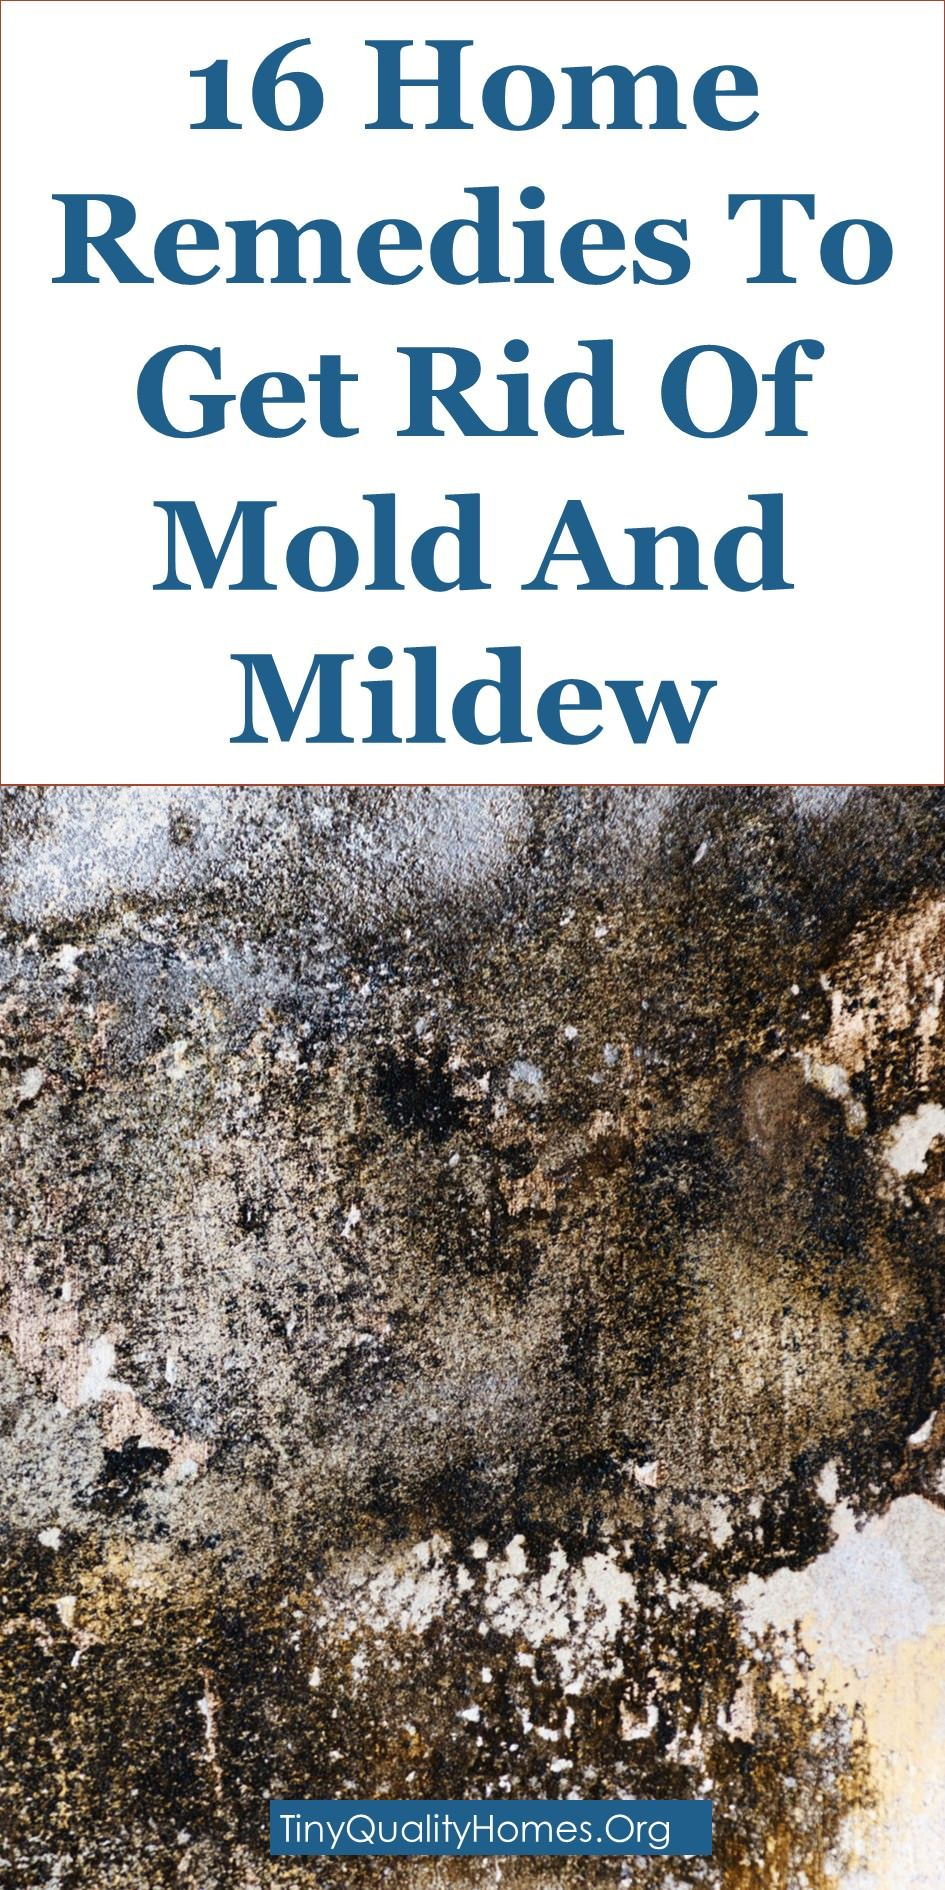 16 Home Remedies To Get Rid Of Mold Mould And Mildew